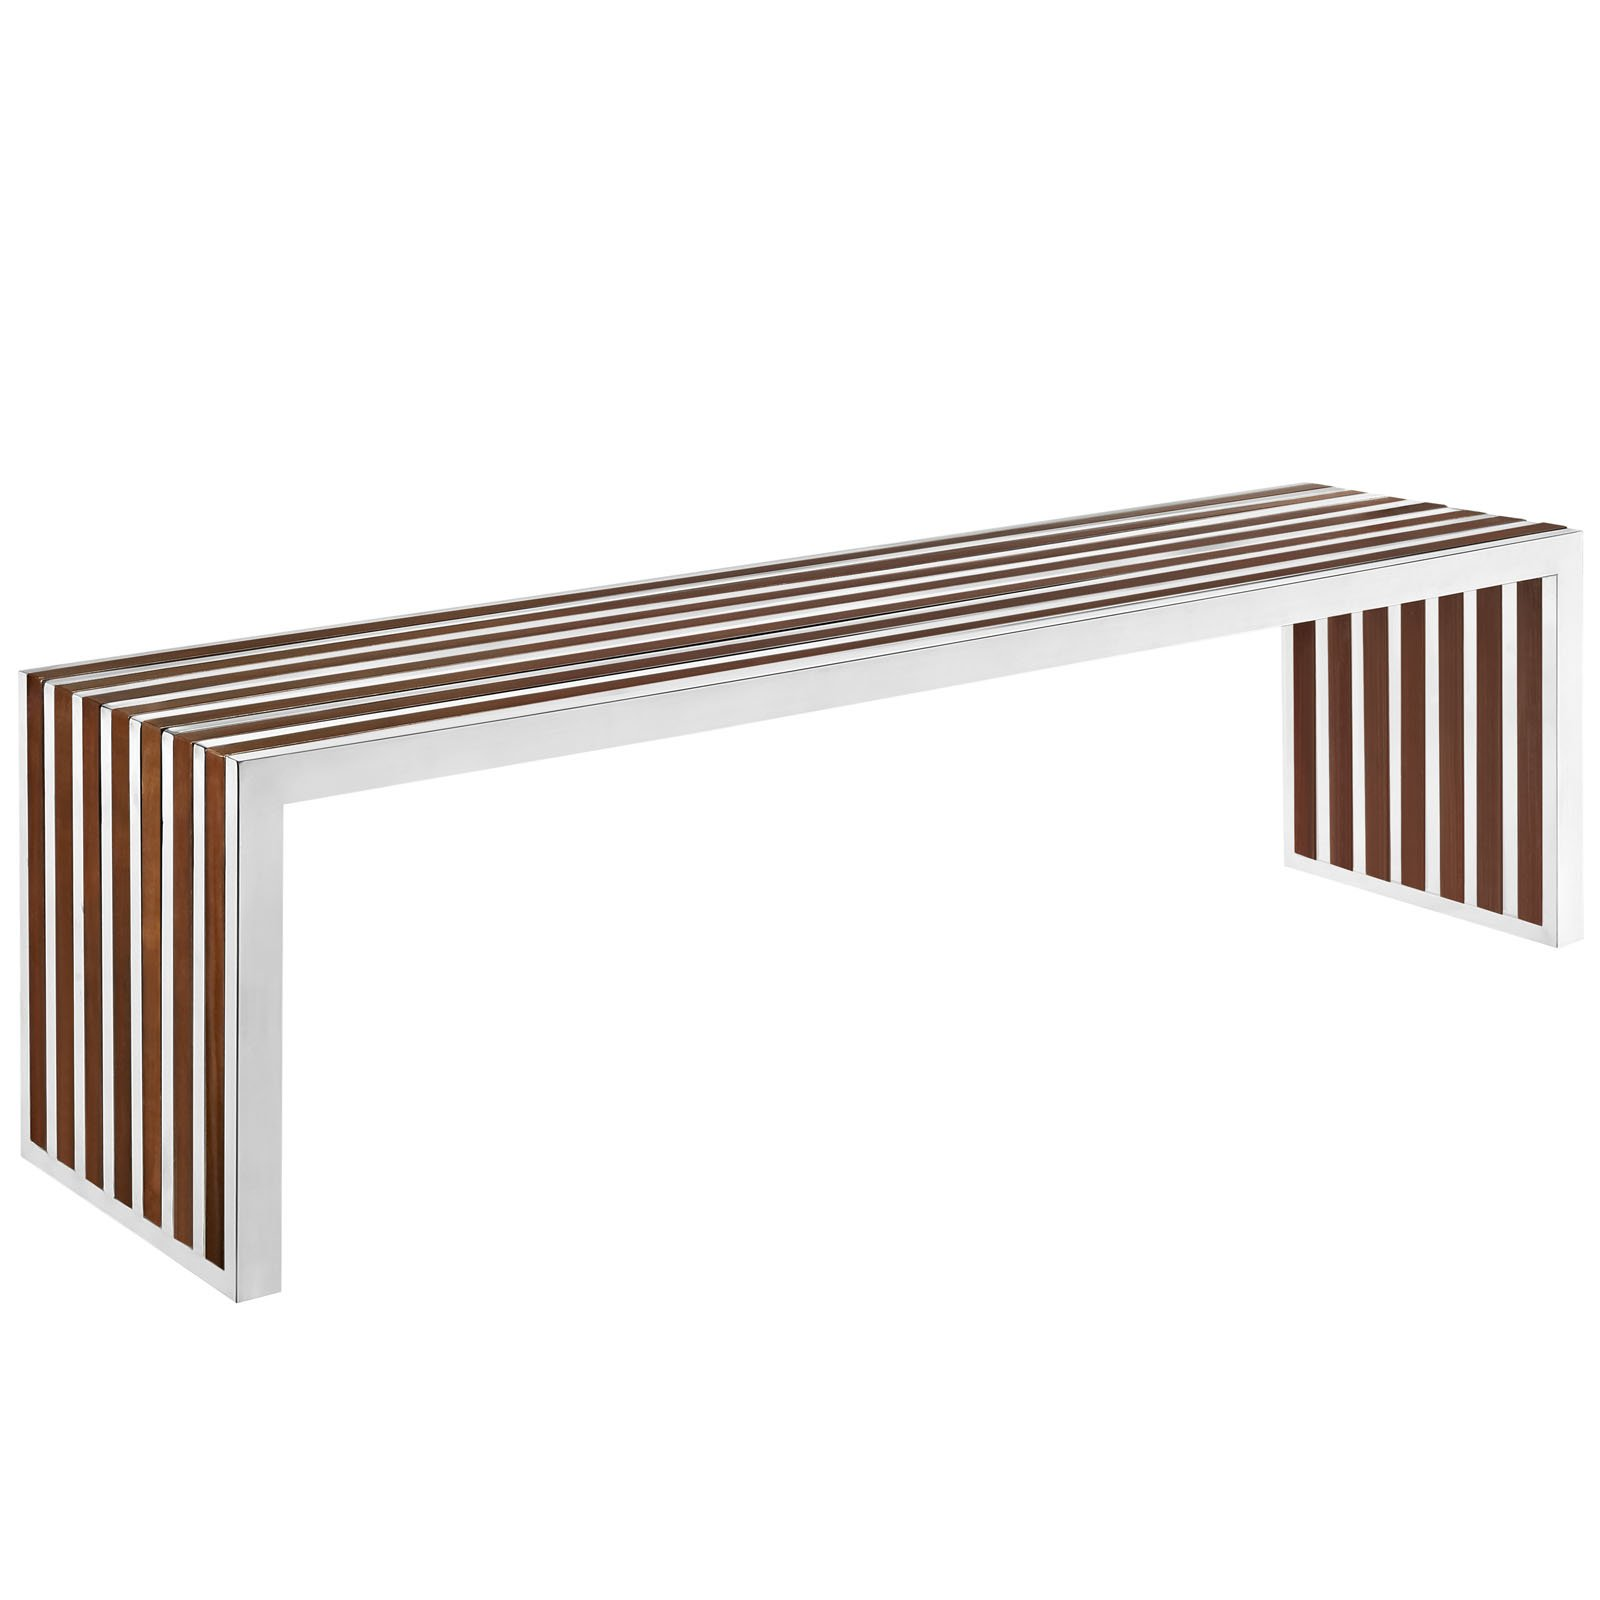 Modway Gridiron Contemporary Modern Large Stainless Steel Bench With Wood Inlay, 60'' by Modway